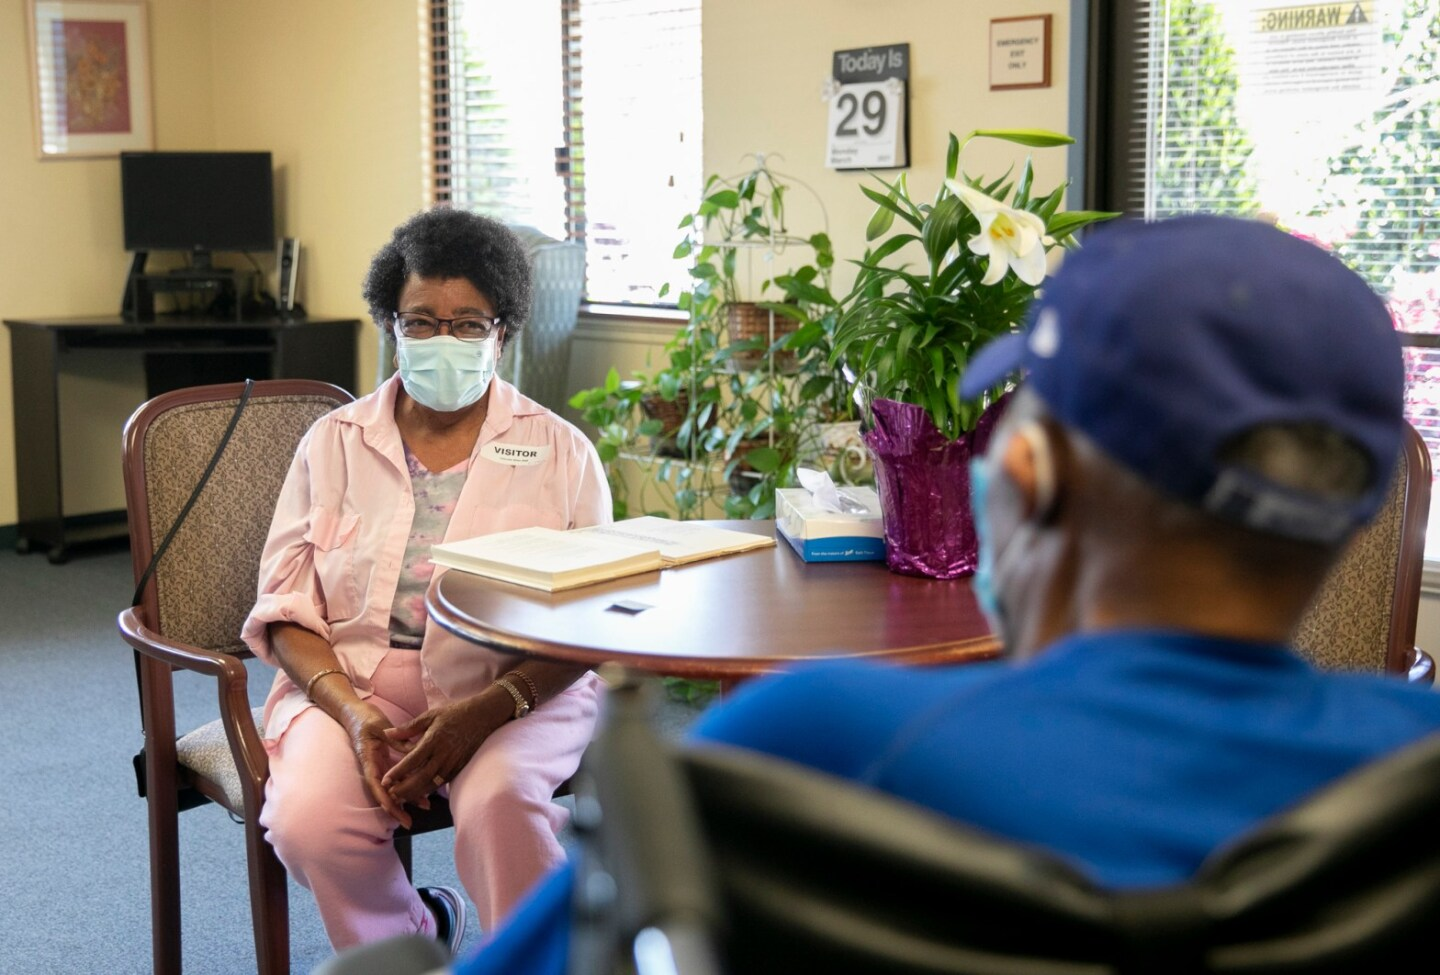 A Black woman wearing a face mask and a pink jacket and pants looks longingly at a man in a baseball cap sitting across her inside a nursing home.